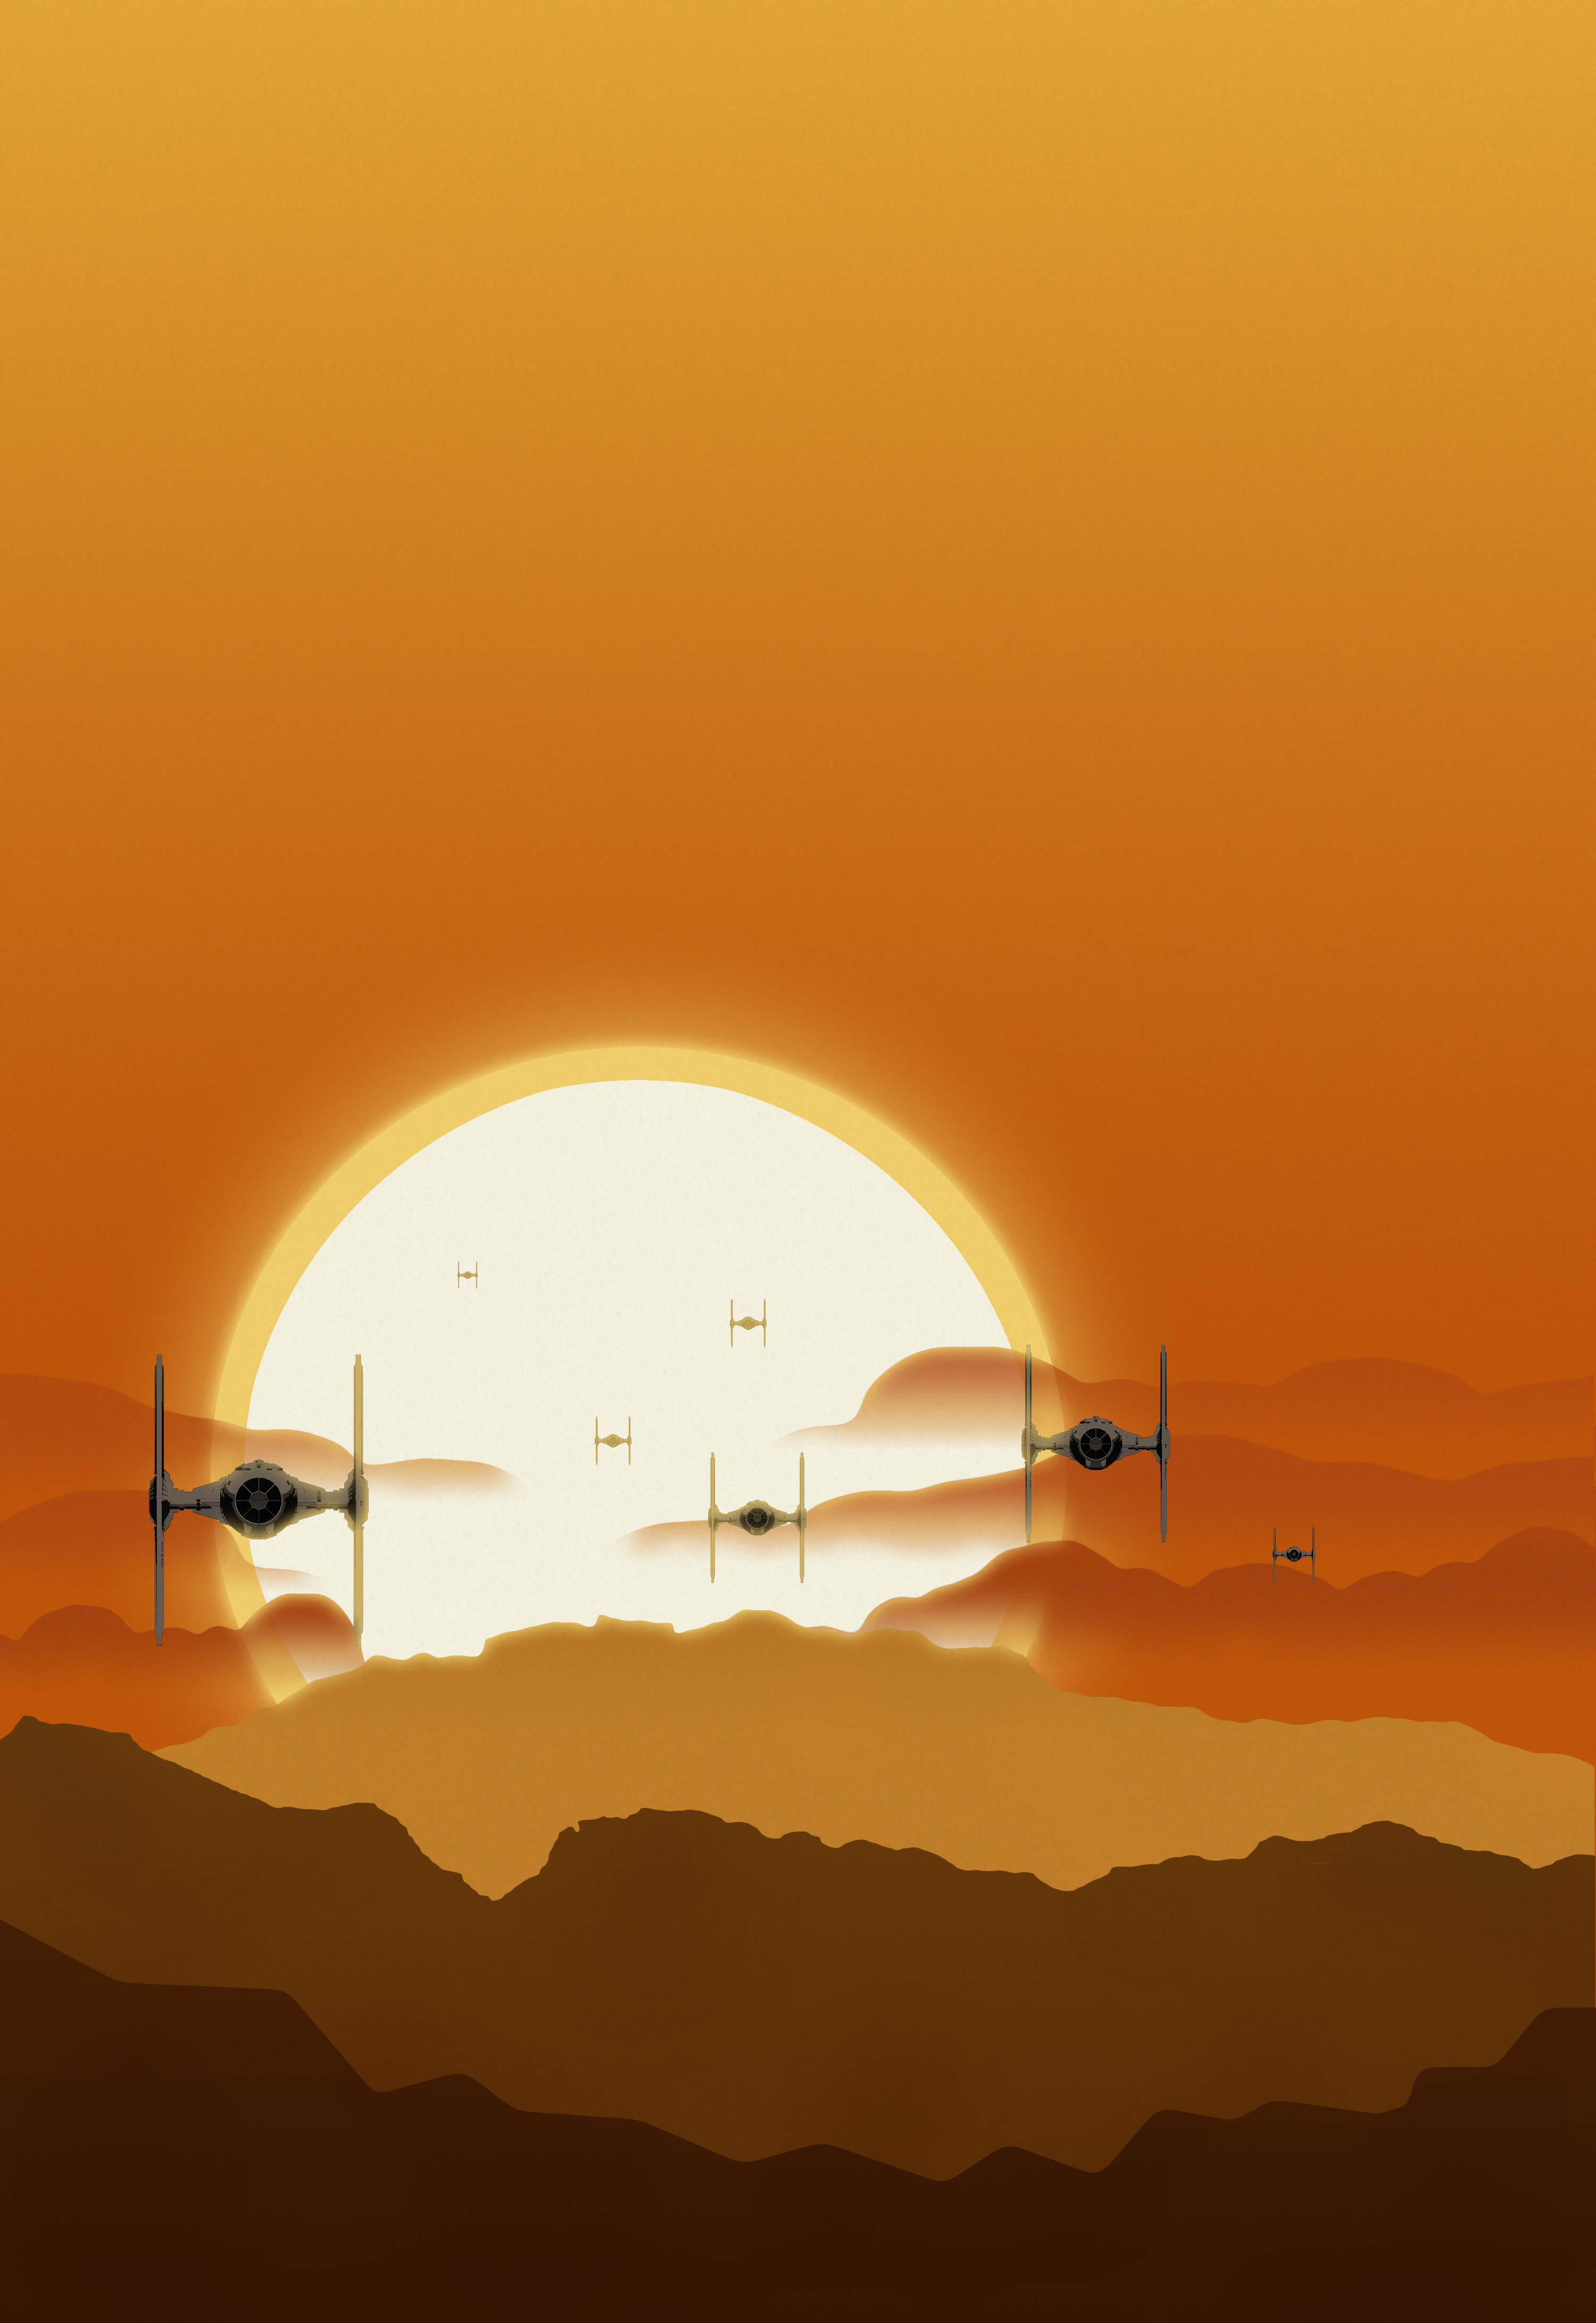 Sci Fi Vector Art by Max Melzer